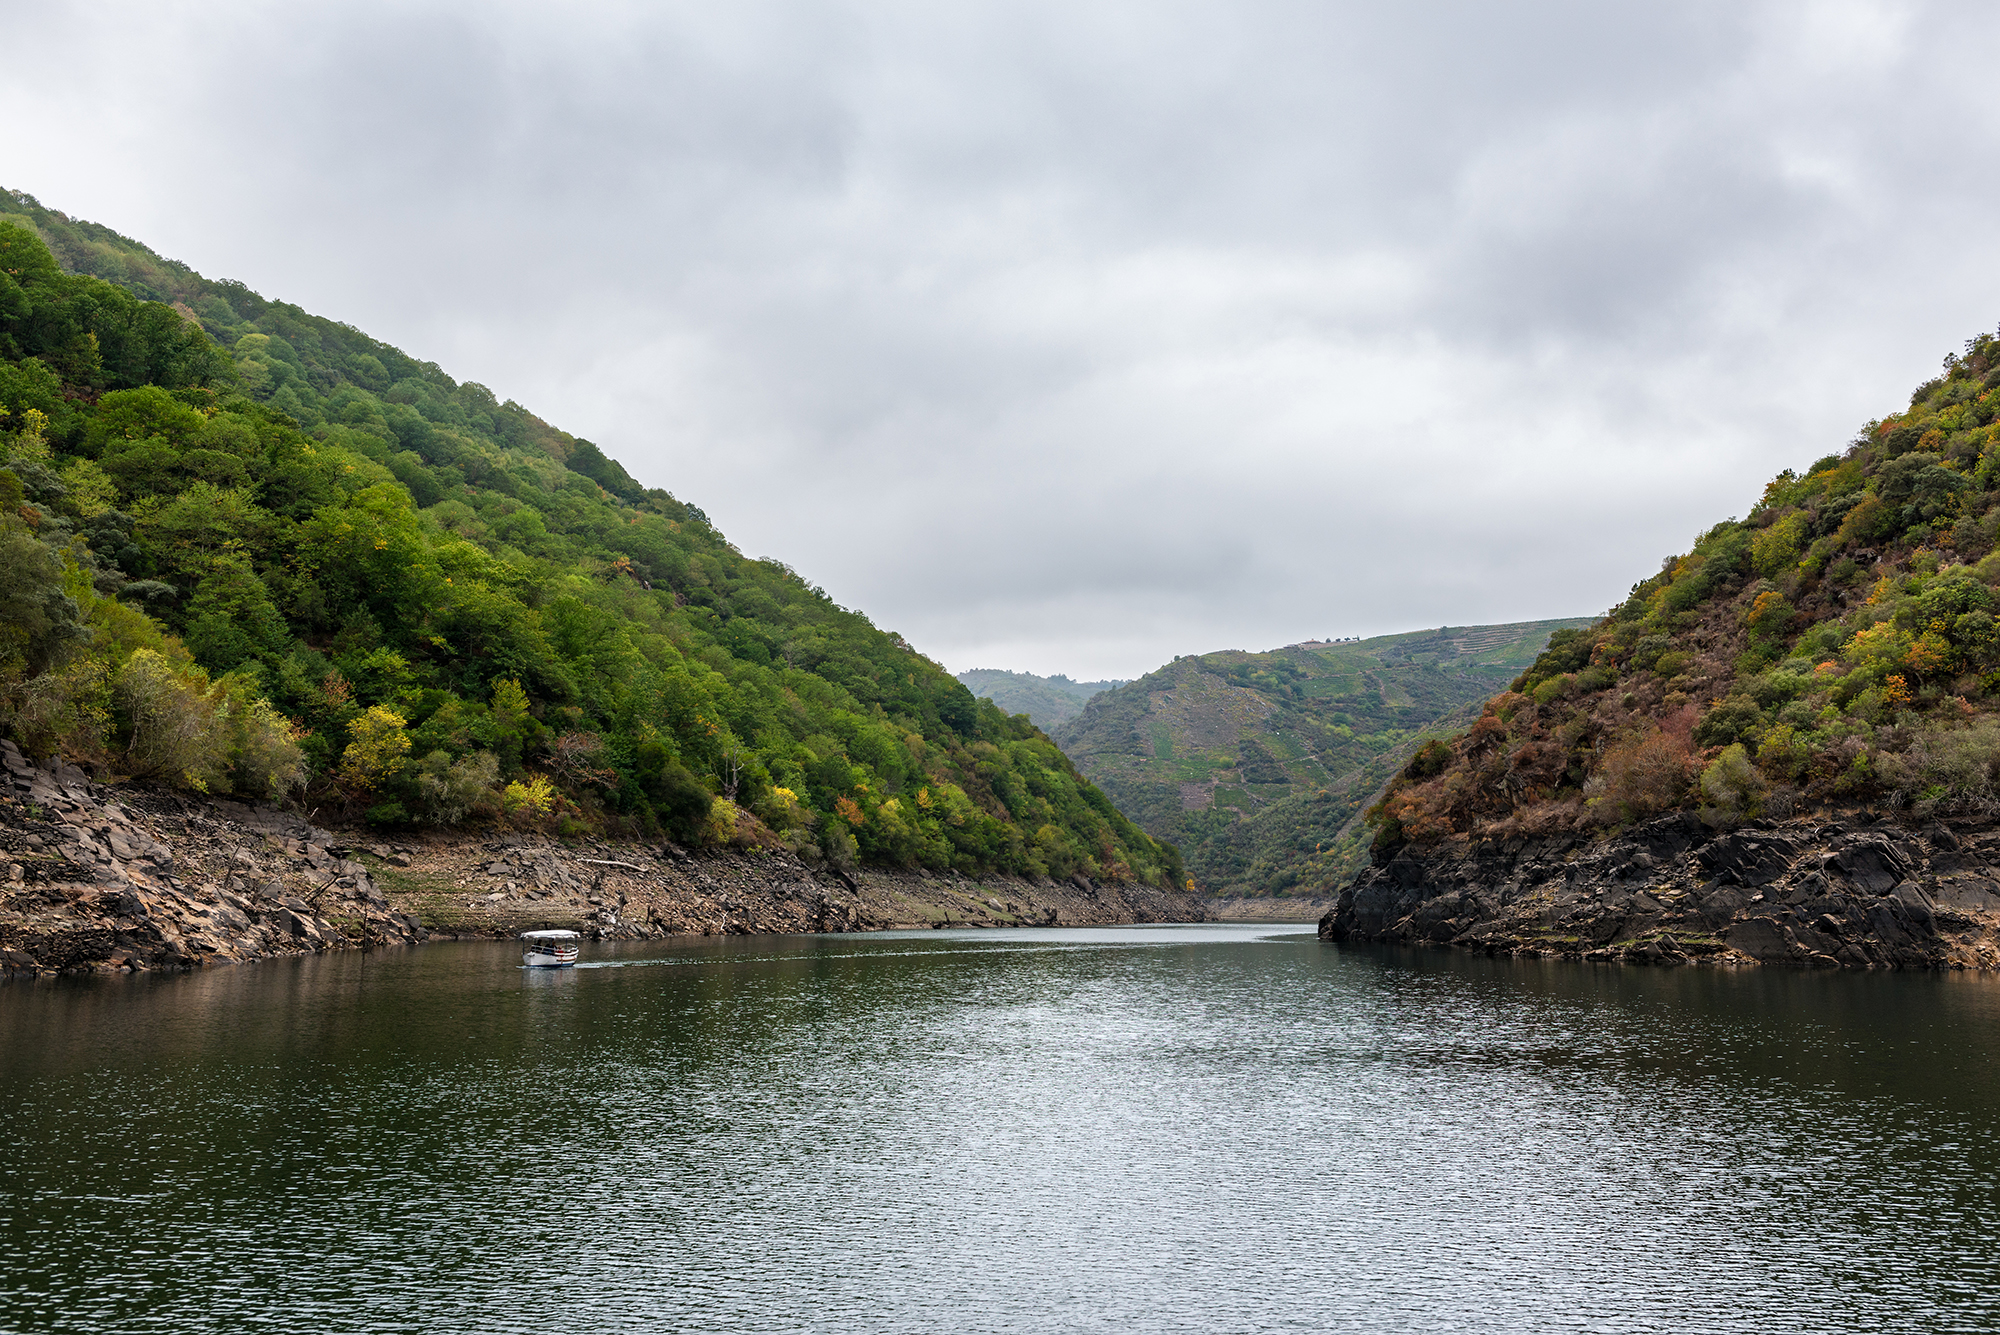 Canyons and valleys along the River Sil